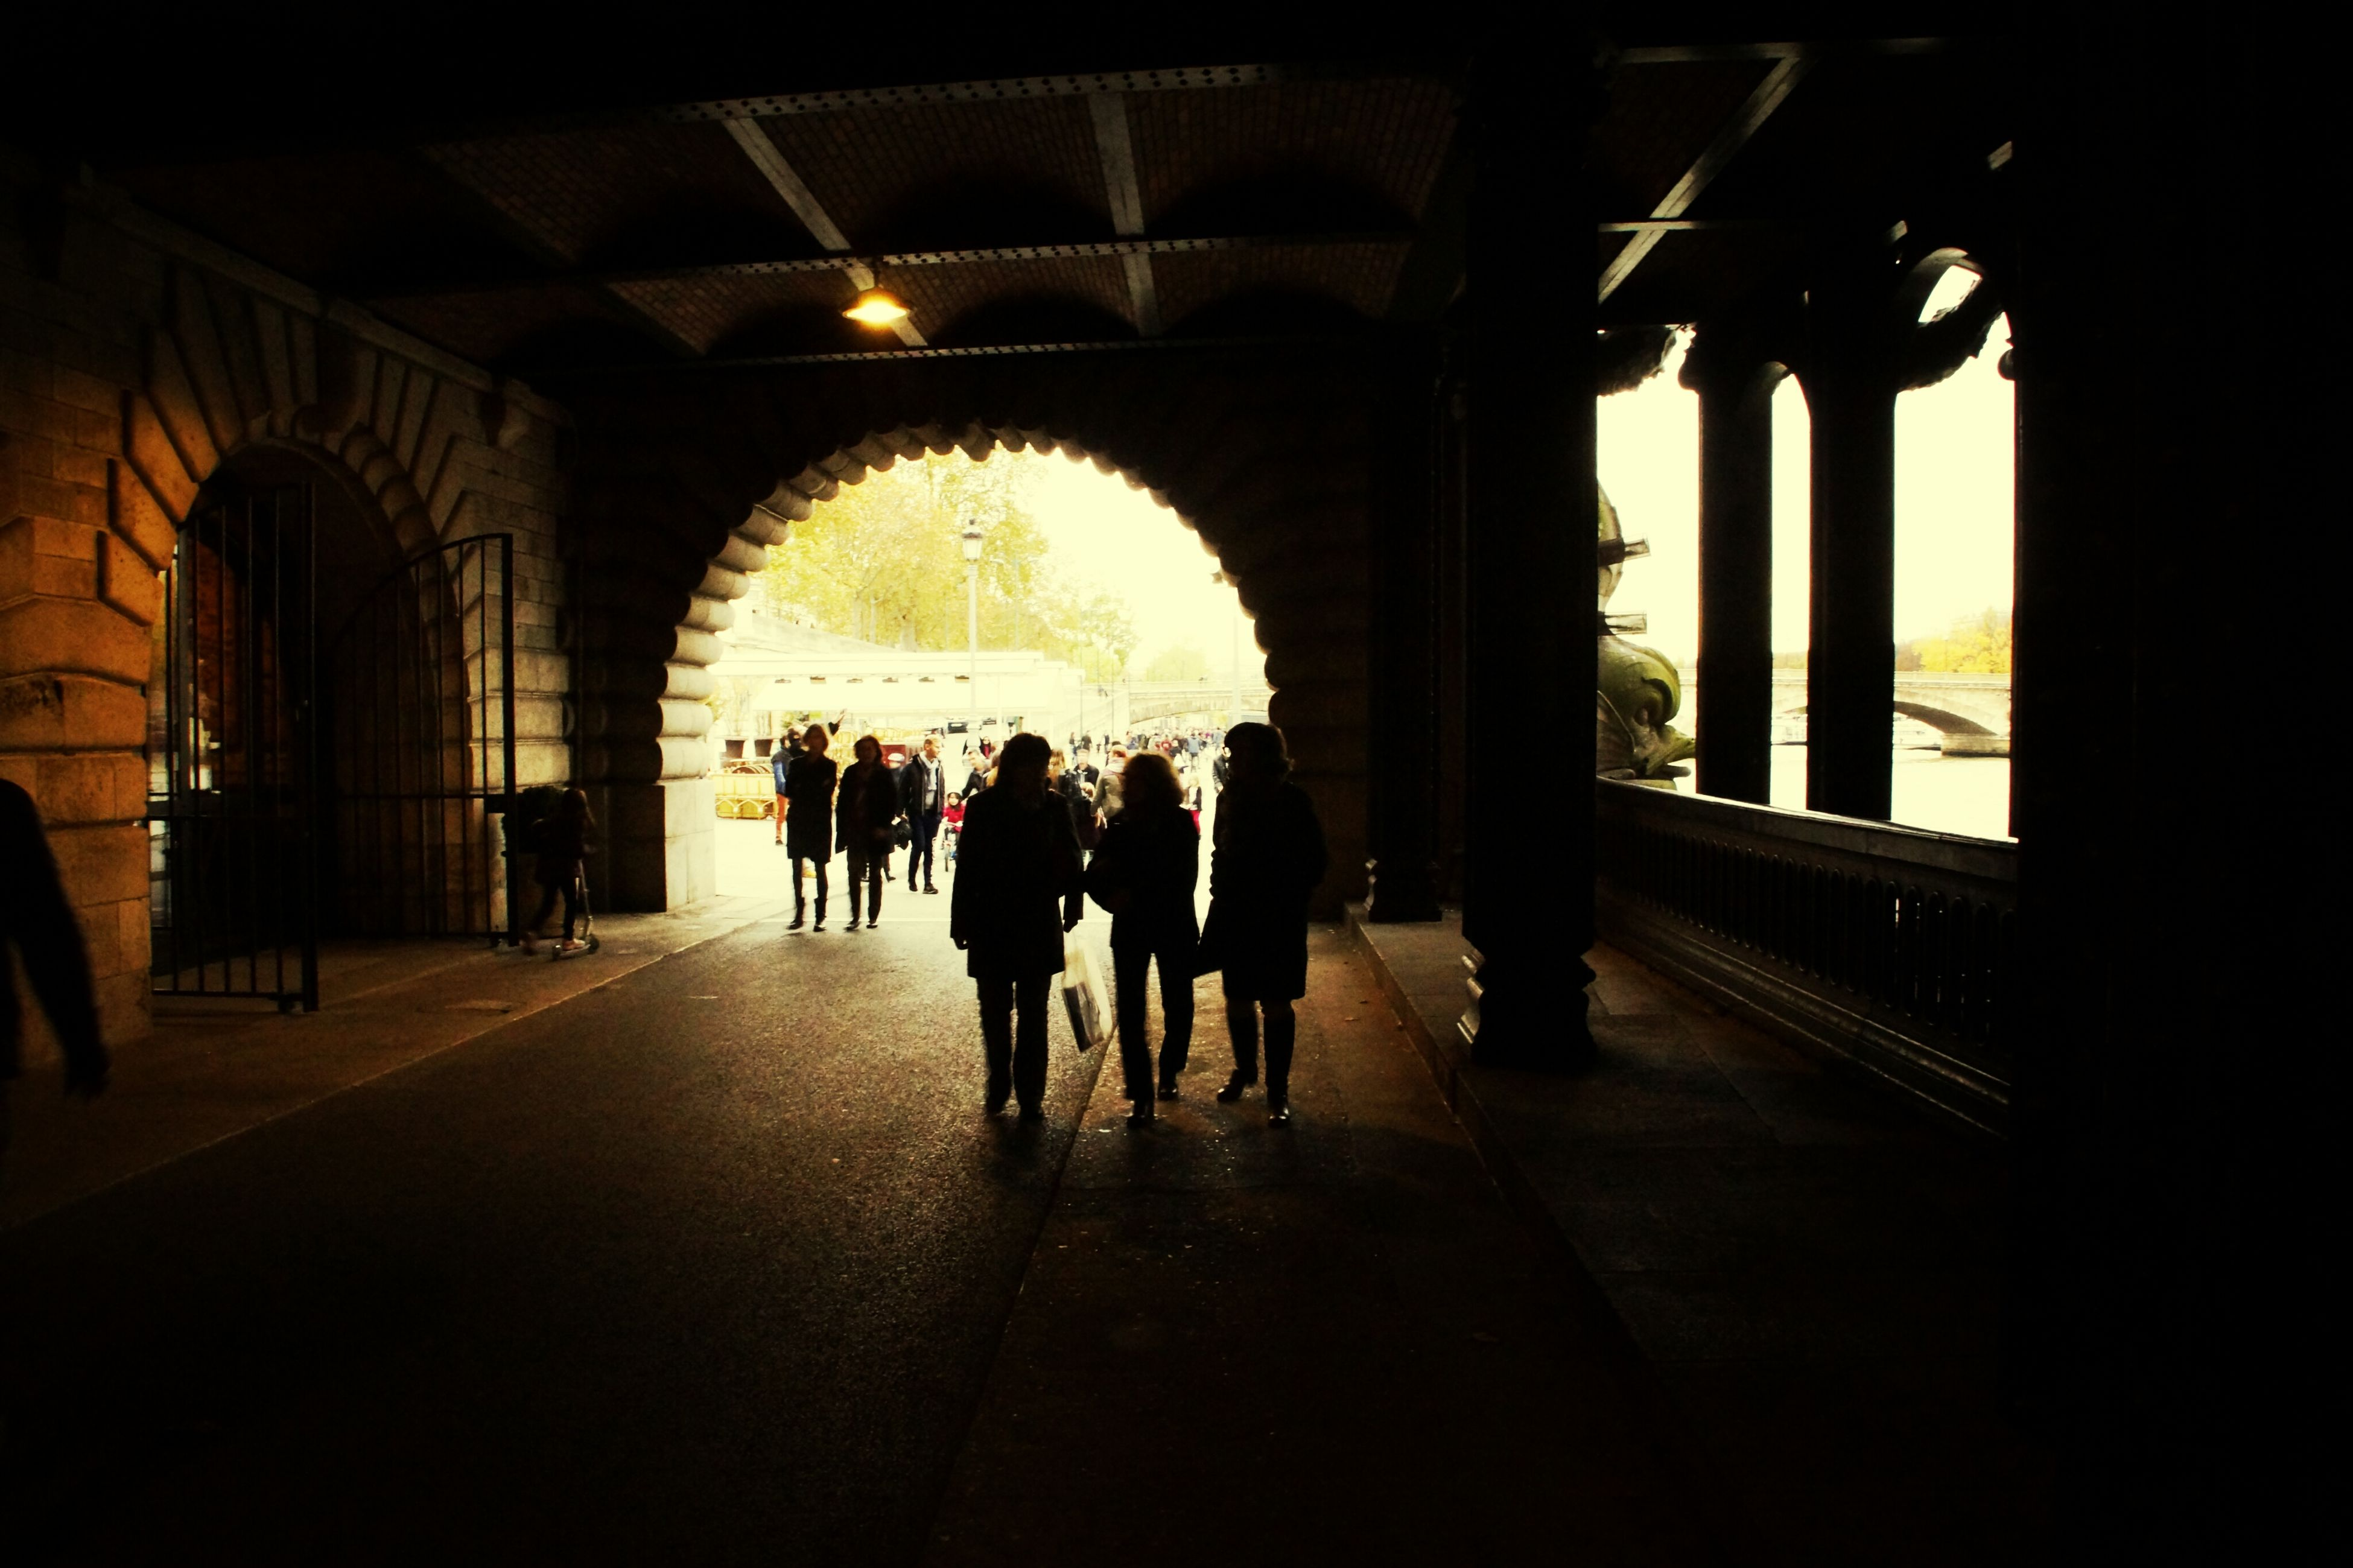 indoors, arch, men, architecture, person, lifestyles, built structure, large group of people, walking, silhouette, leisure activity, medium group of people, full length, tourist, travel, architectural column, group of people, mixed age range, togetherness